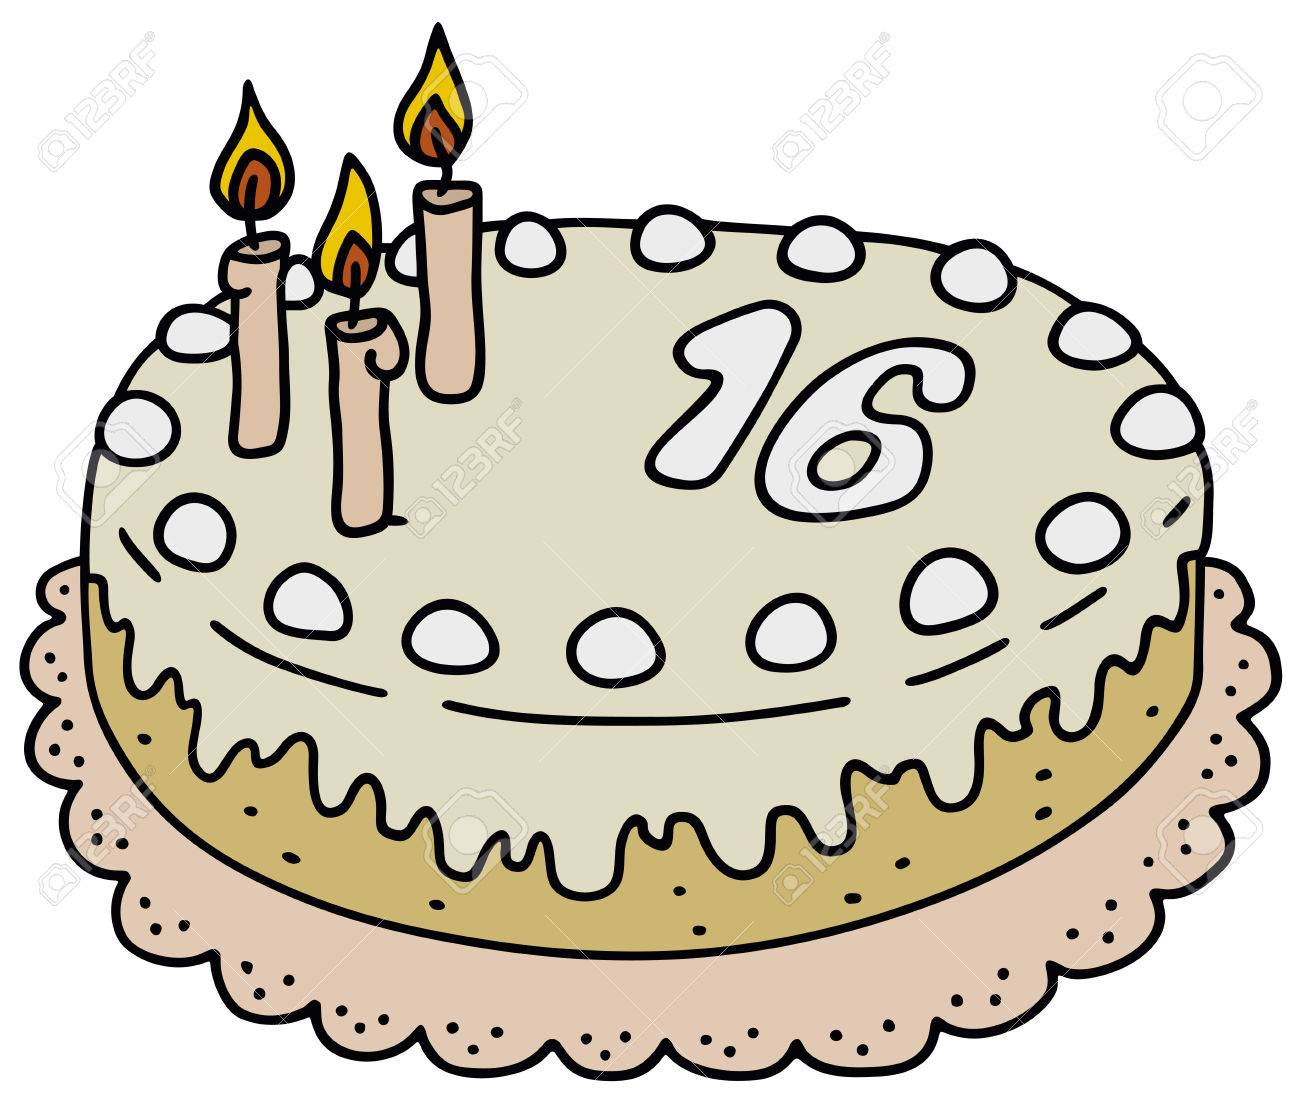 Hand Drawing Of A Birthday Cake Royalty Free Cliparts Vectors And